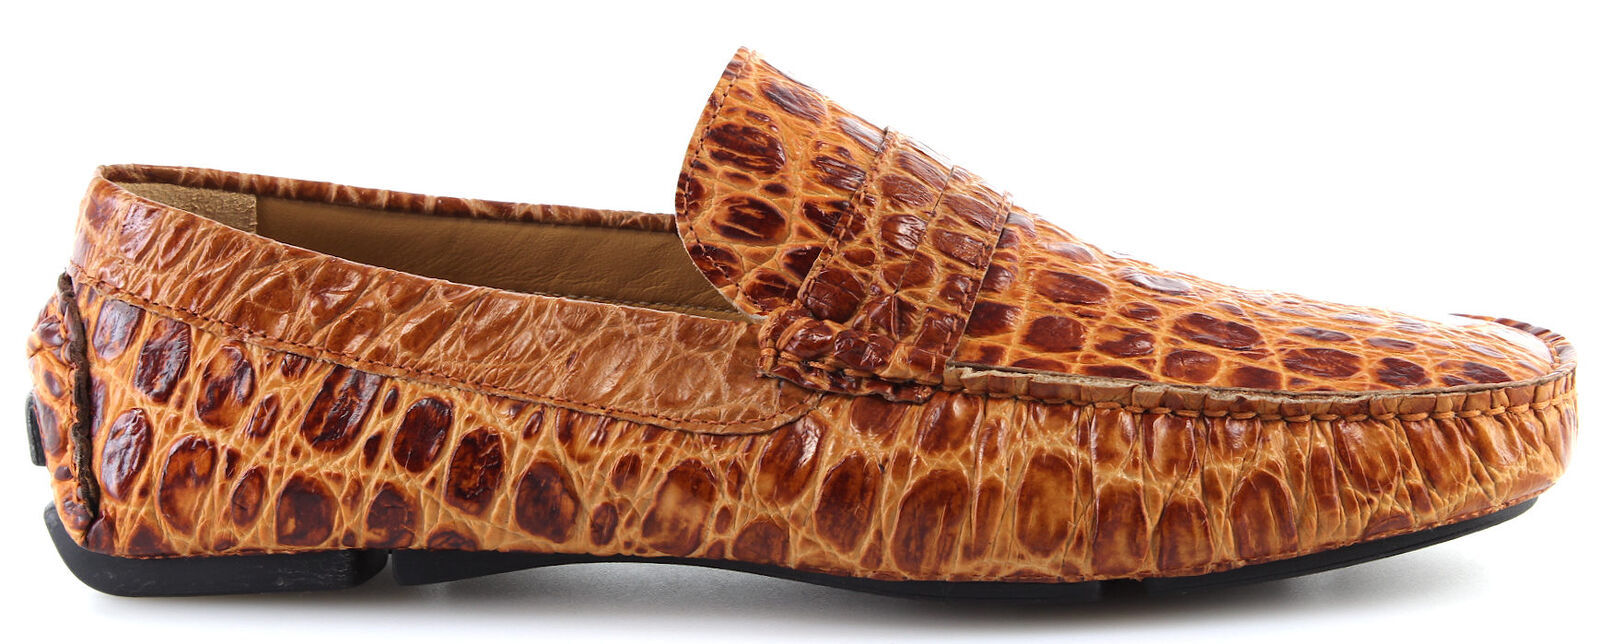 Men's shoes Moccasins Loafers ROMEO GIGLI MILANO 90142 Cocco Cognac Leather New